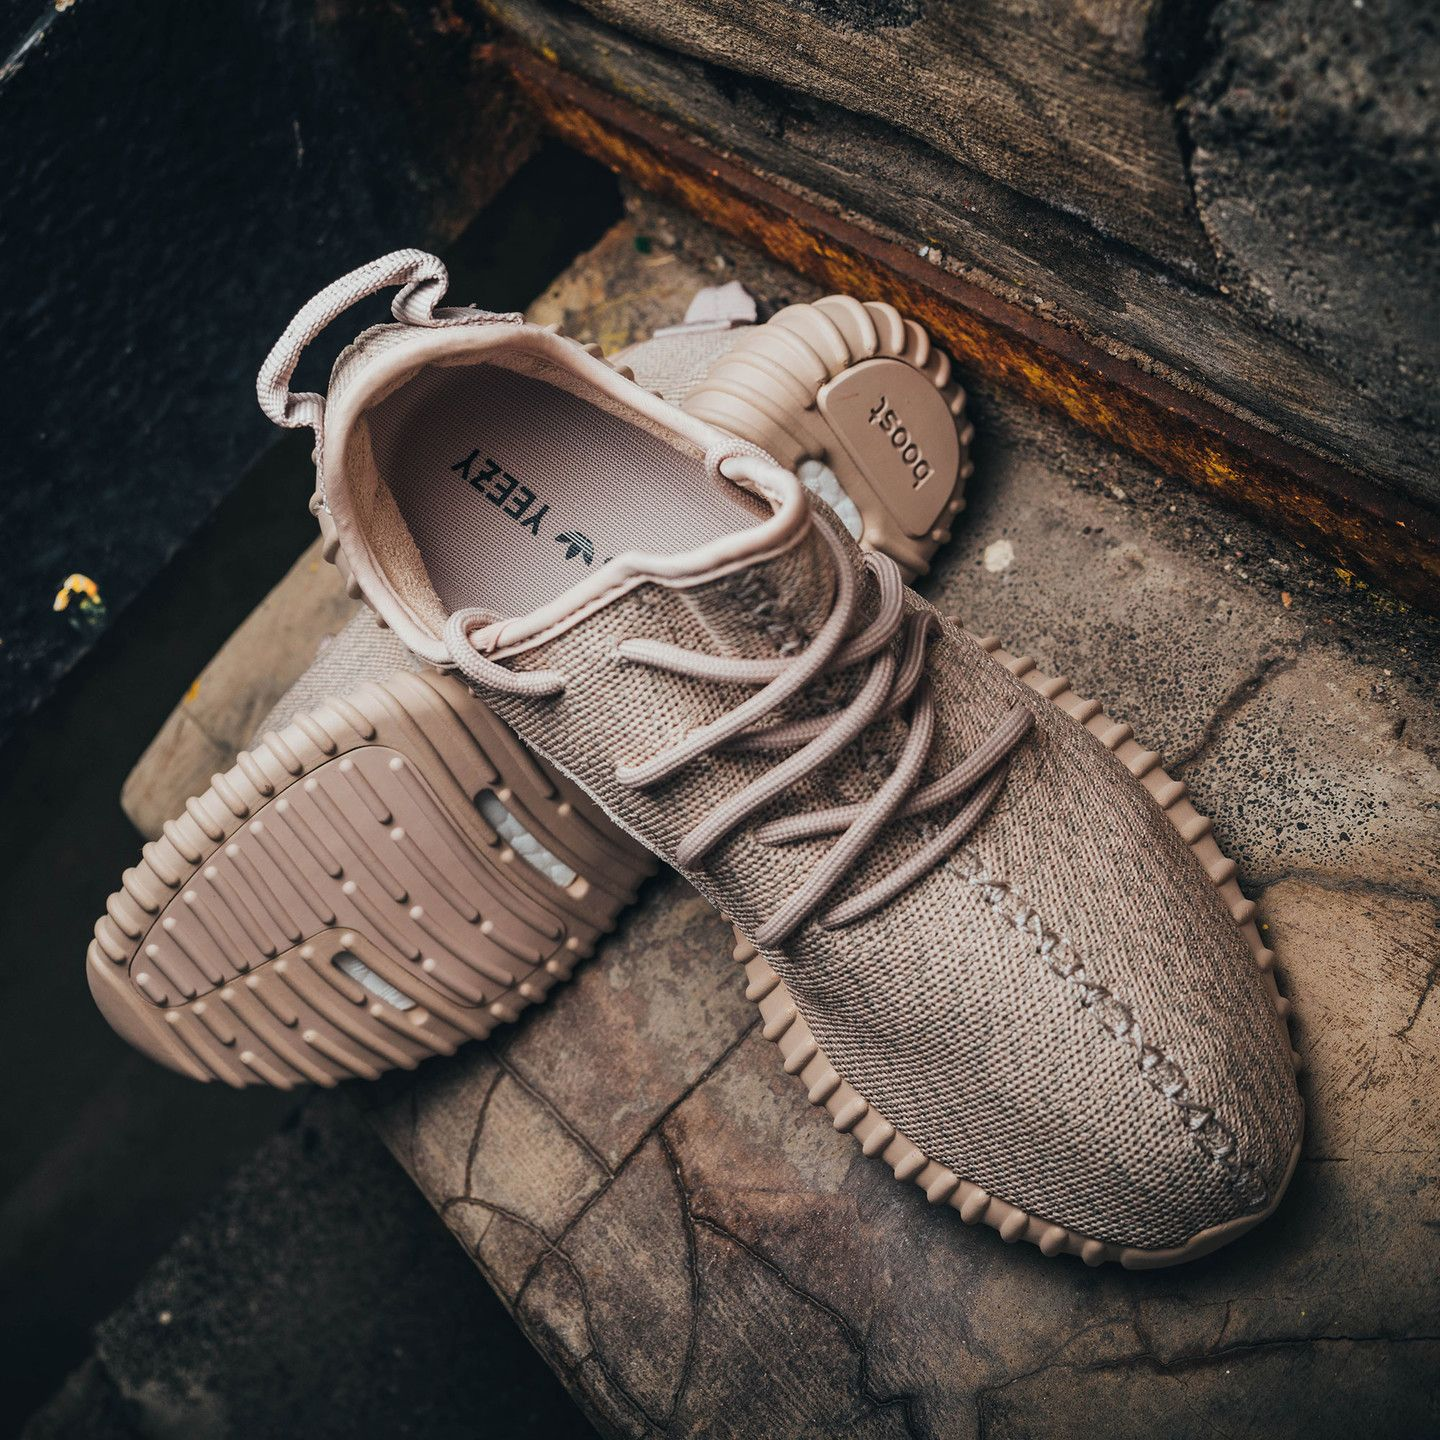 979918a1681f2 Adidas Yeezy Boost 350 Light Stone   Oxford Tan AQ2661